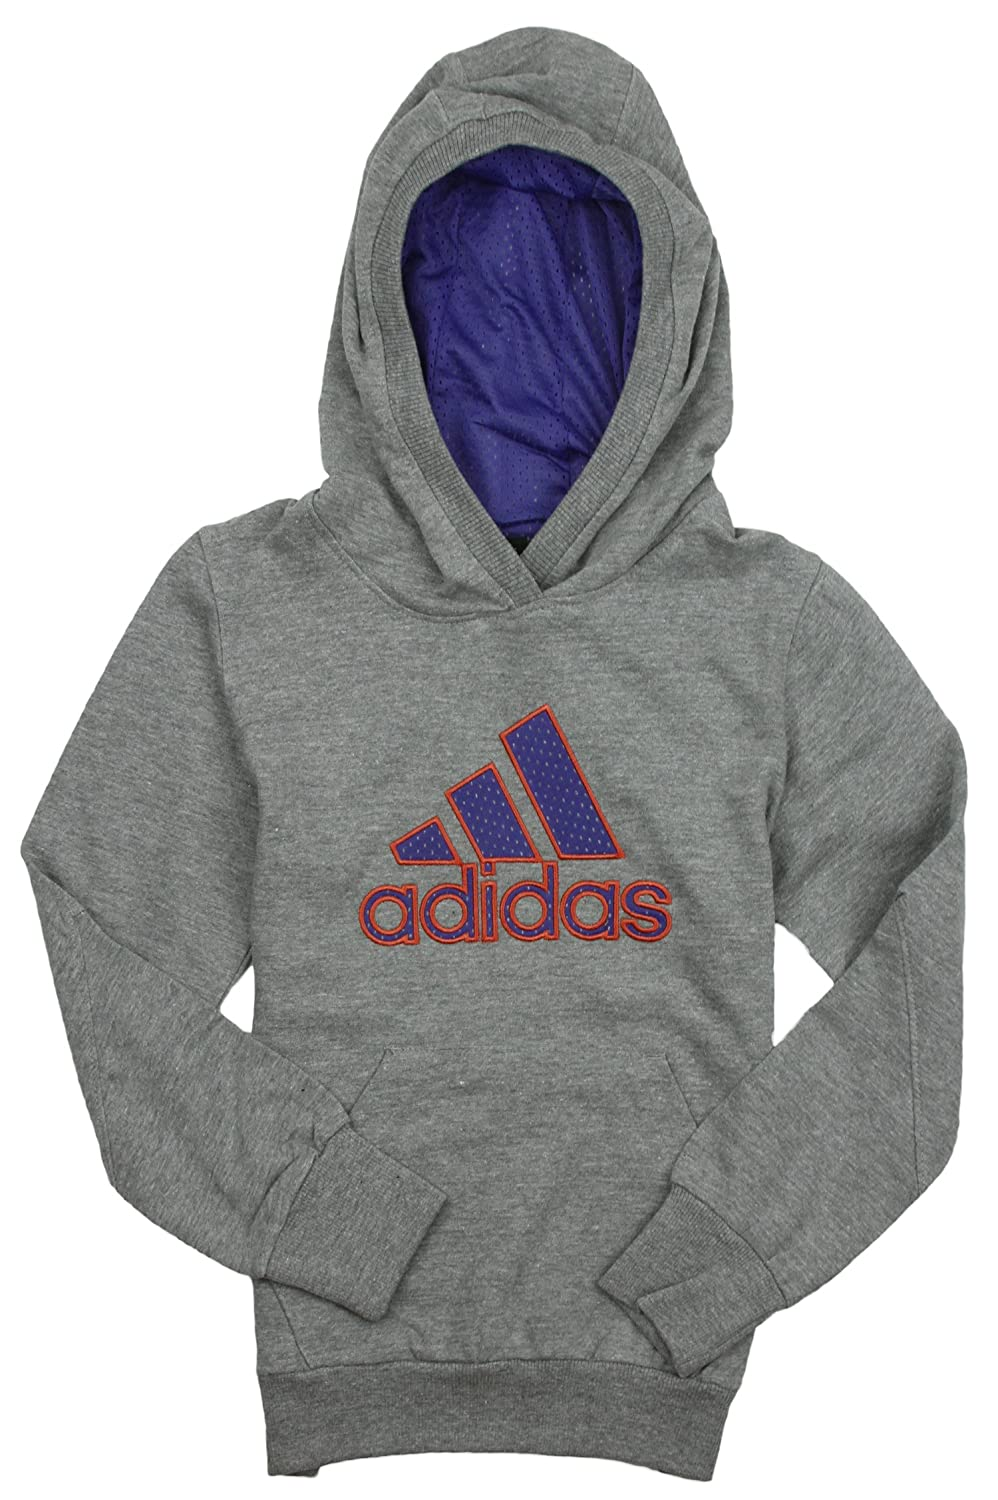 adidas Big Girls Yoga Dance Hoodie Medium Grey/Purple) 87OF8